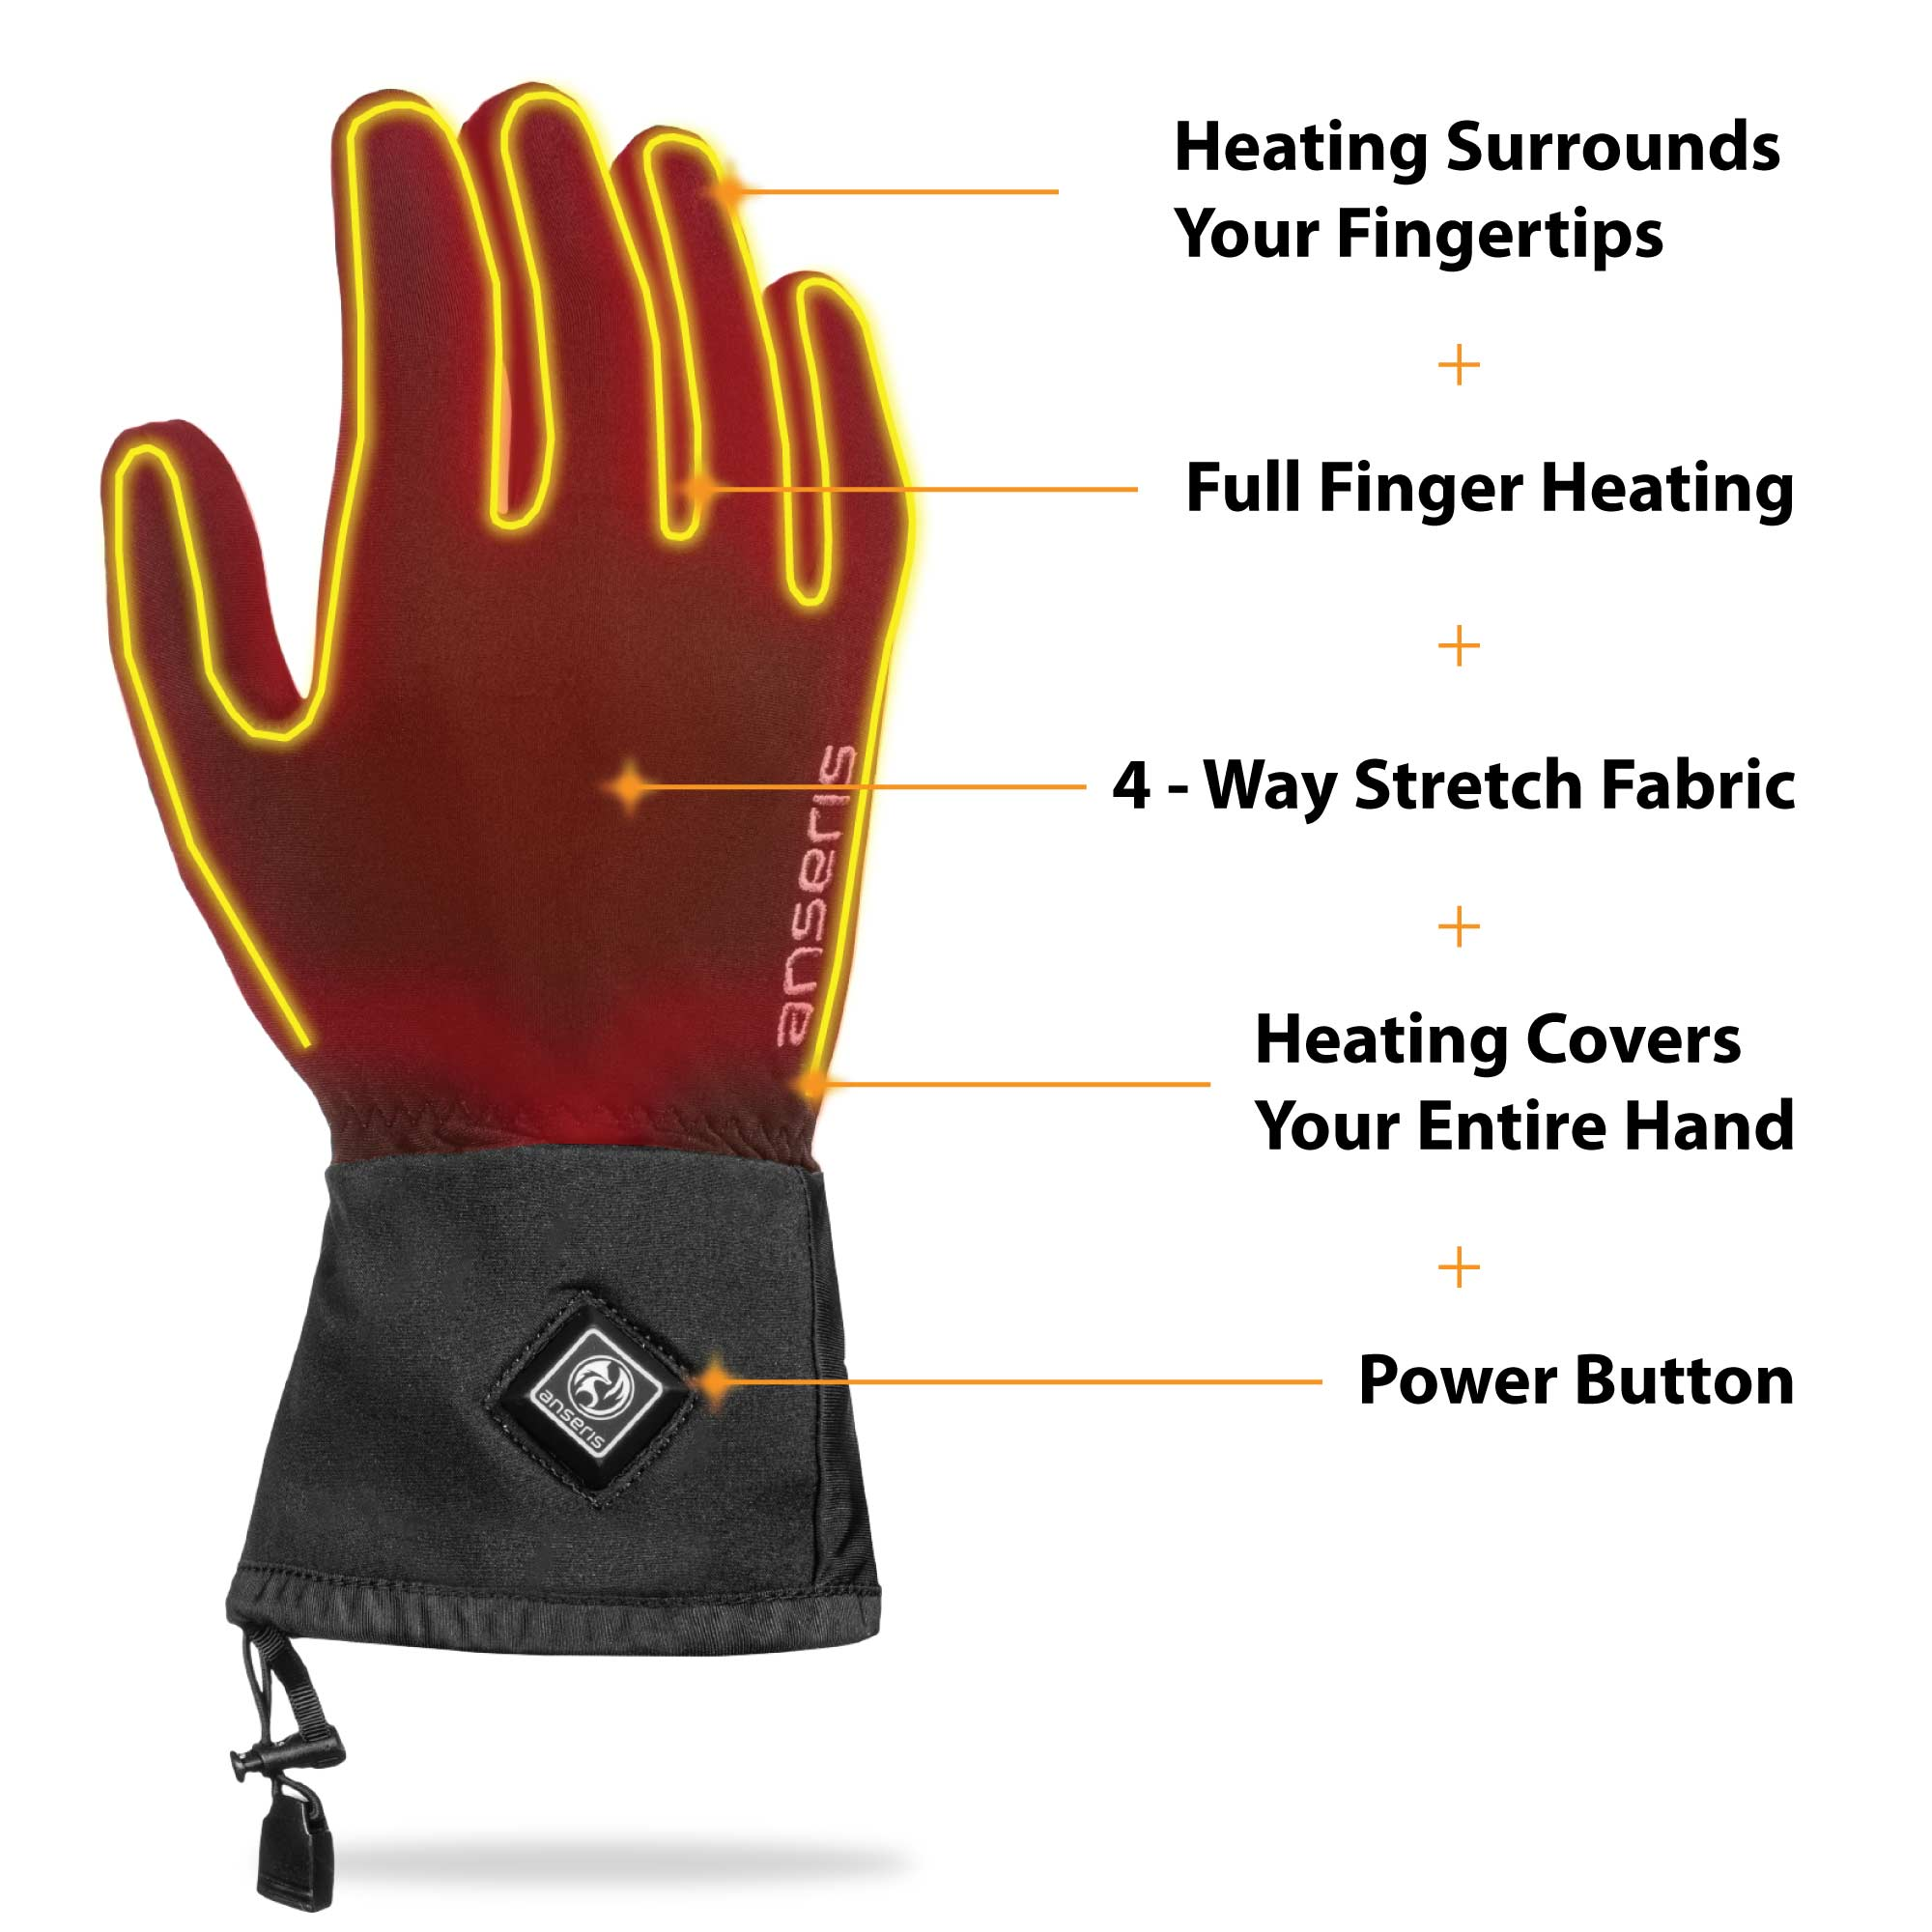 heated gloves feature full finger heating, 4 way stretch fabric a conveniently located power button with heat controls and adjustable wrist straps.